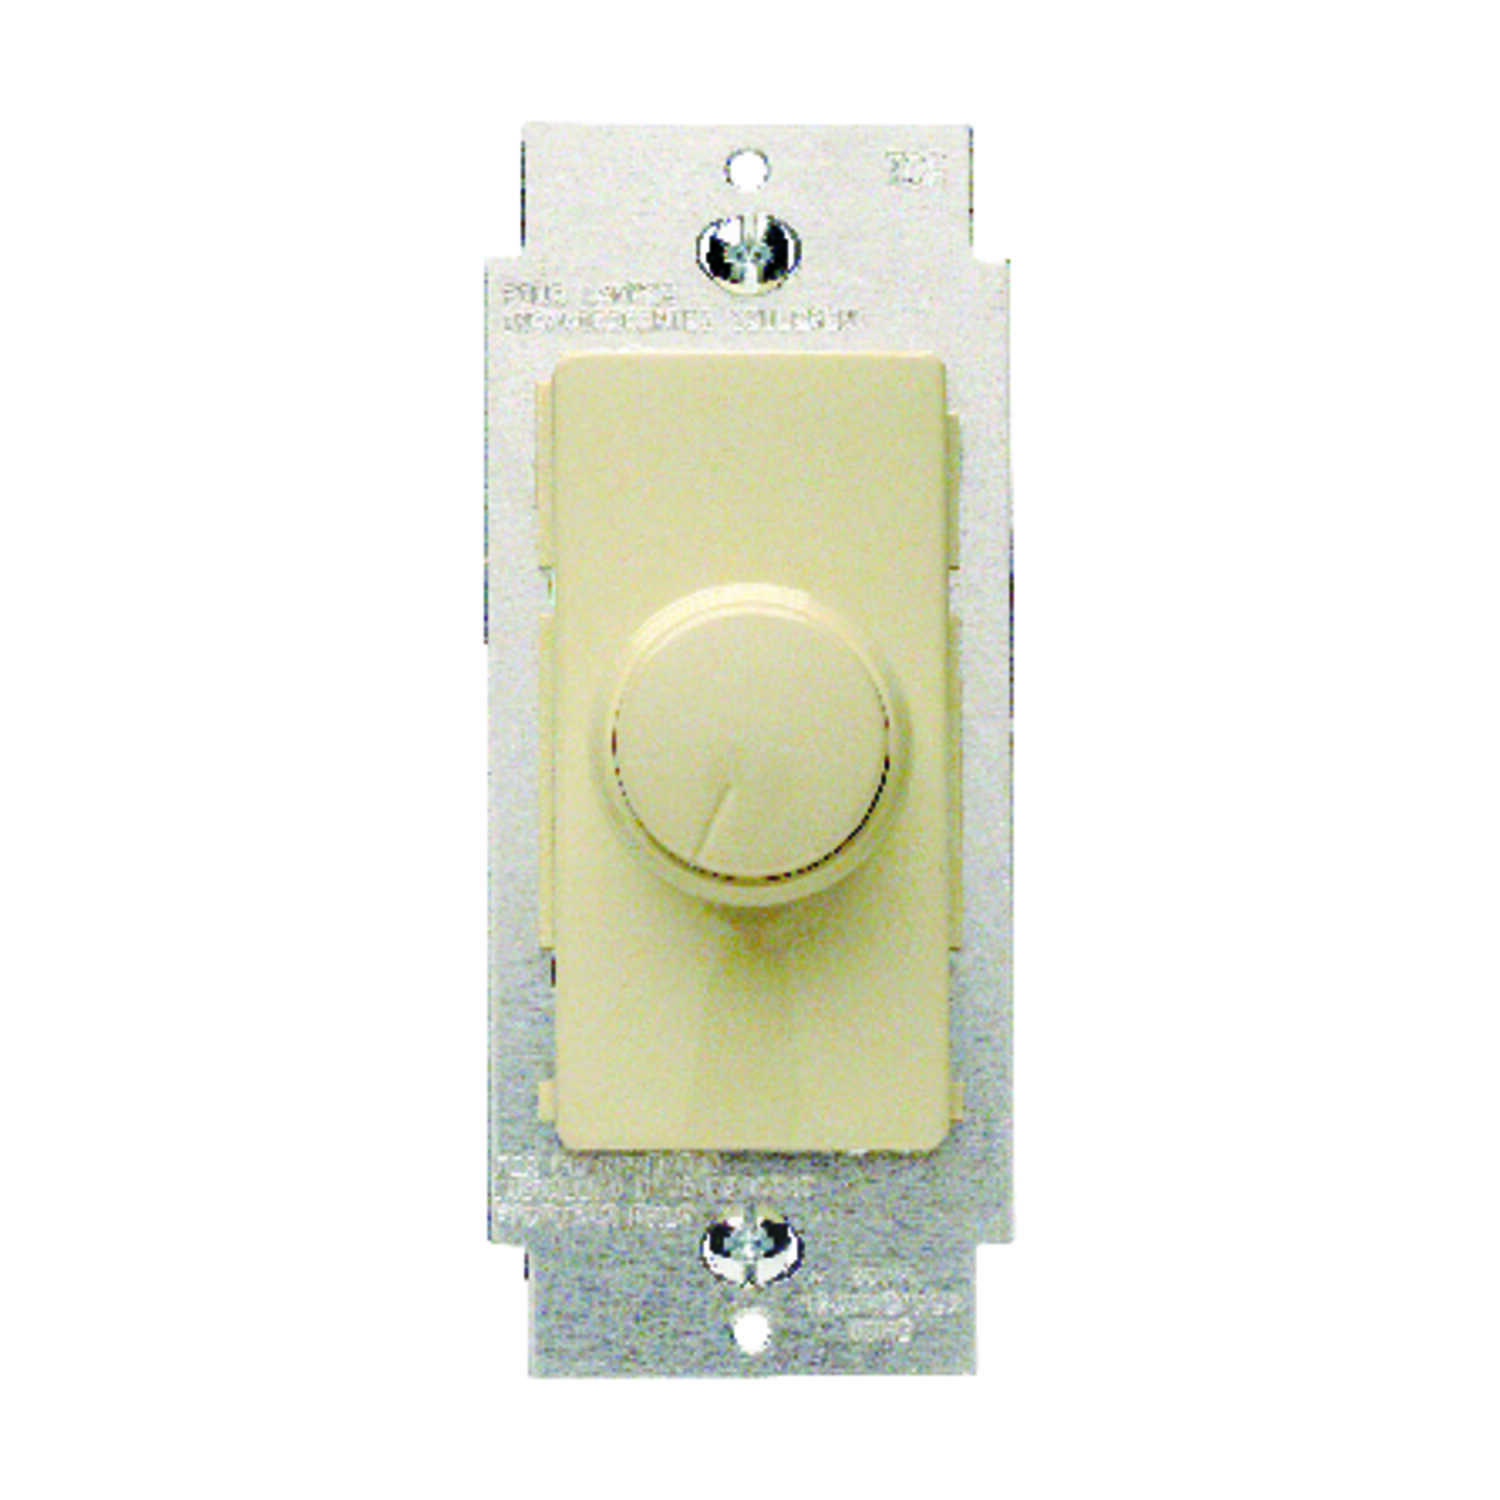 Leviton  IllumaTech  Ivory  600 watts Rotary  Dimmer Switch  1 pk